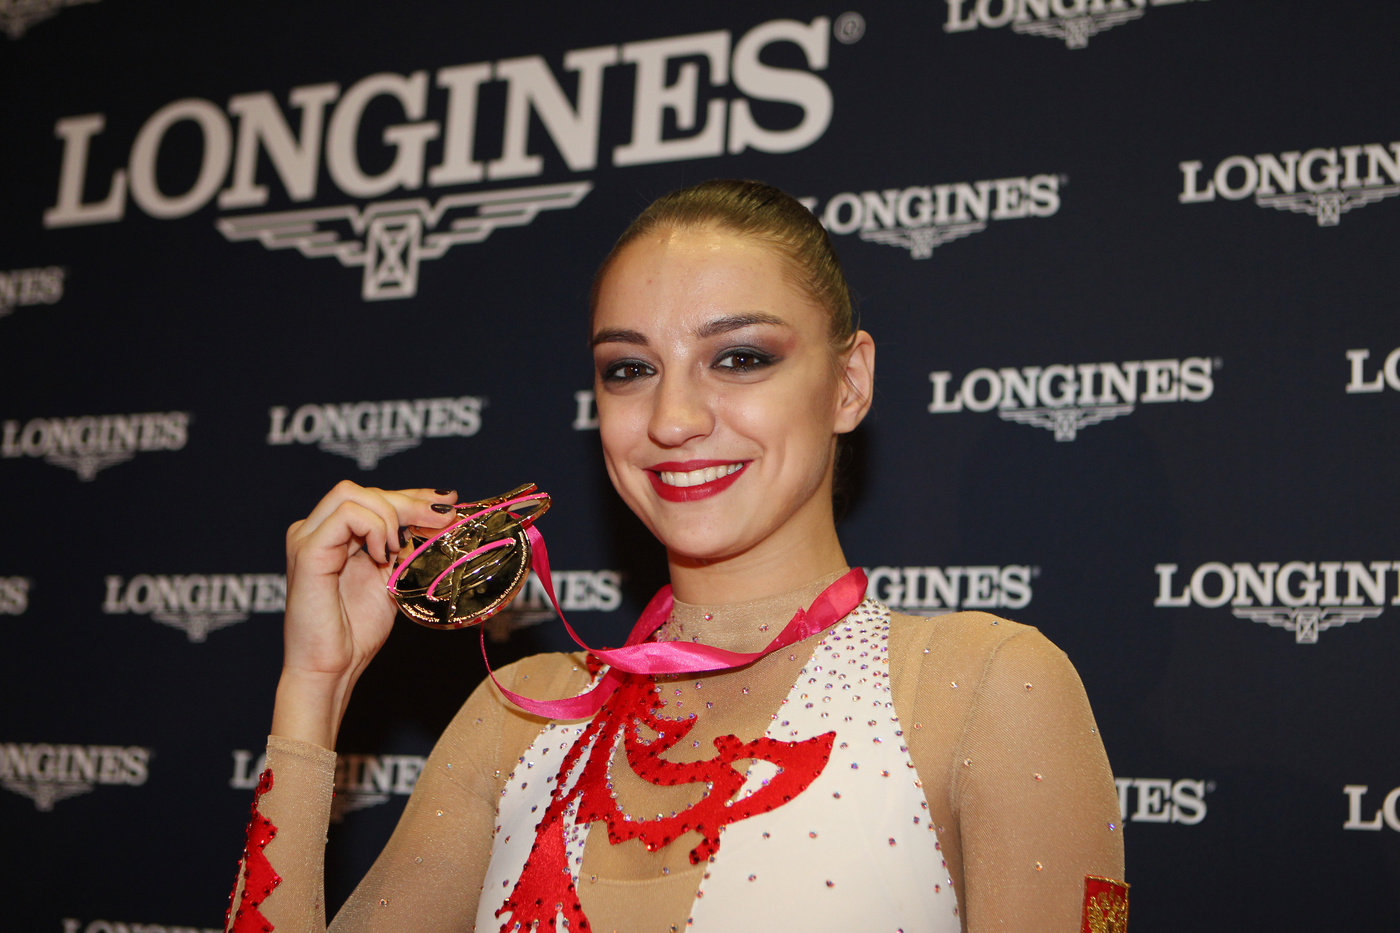 Longines Gymnastics Event: Rhythmic Gymnastics World Championships 2011 10